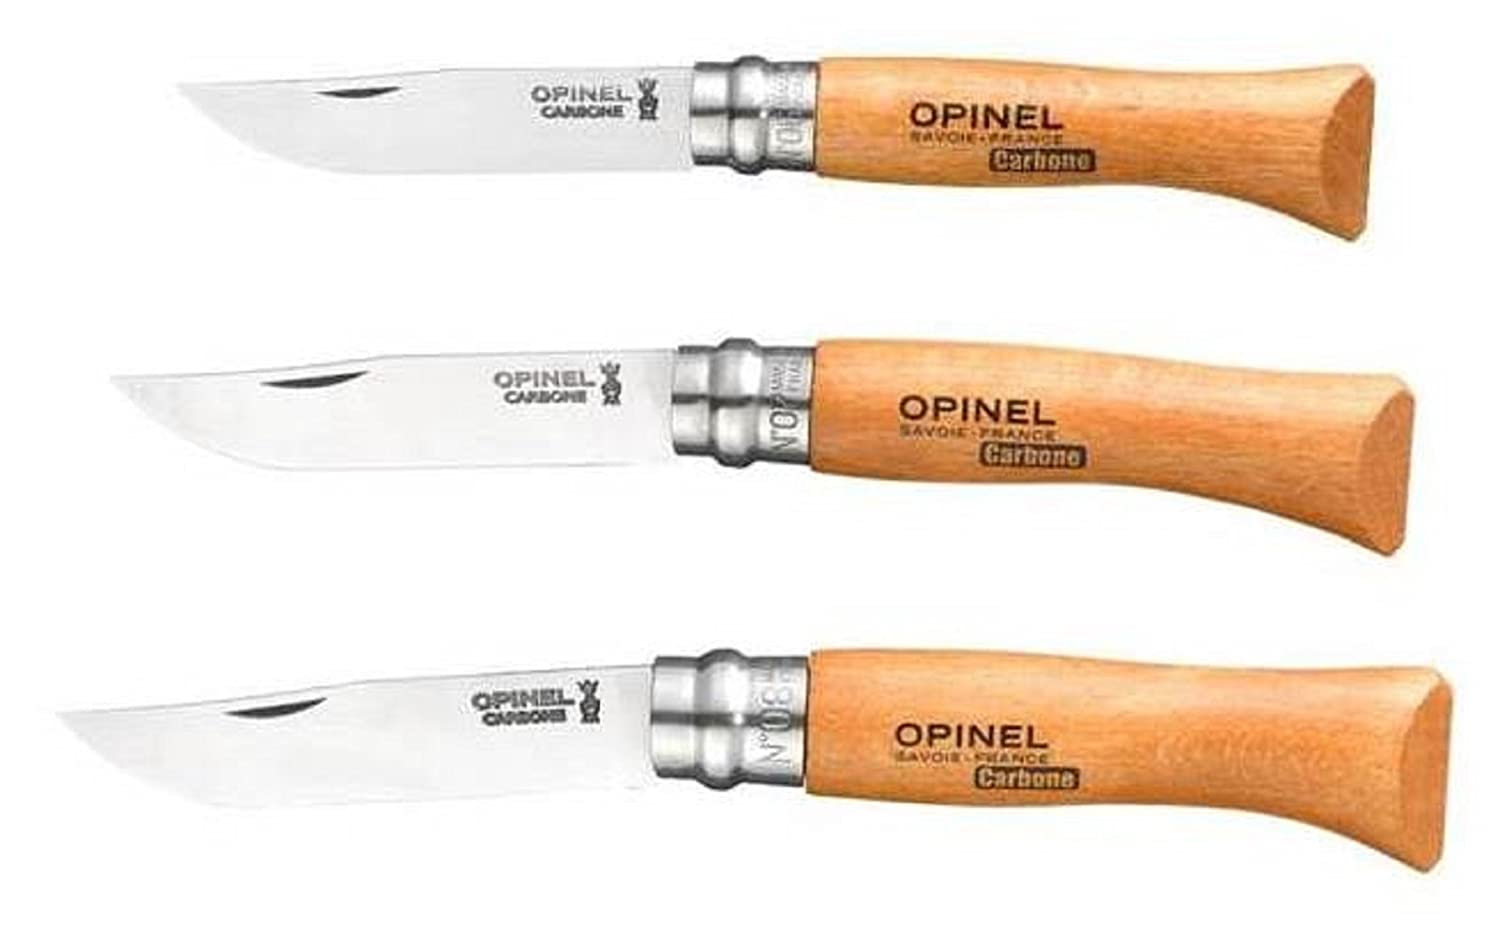 Amazon.com: Bundle – 3 Items: Opinel no 6 cuchillo plegable ...